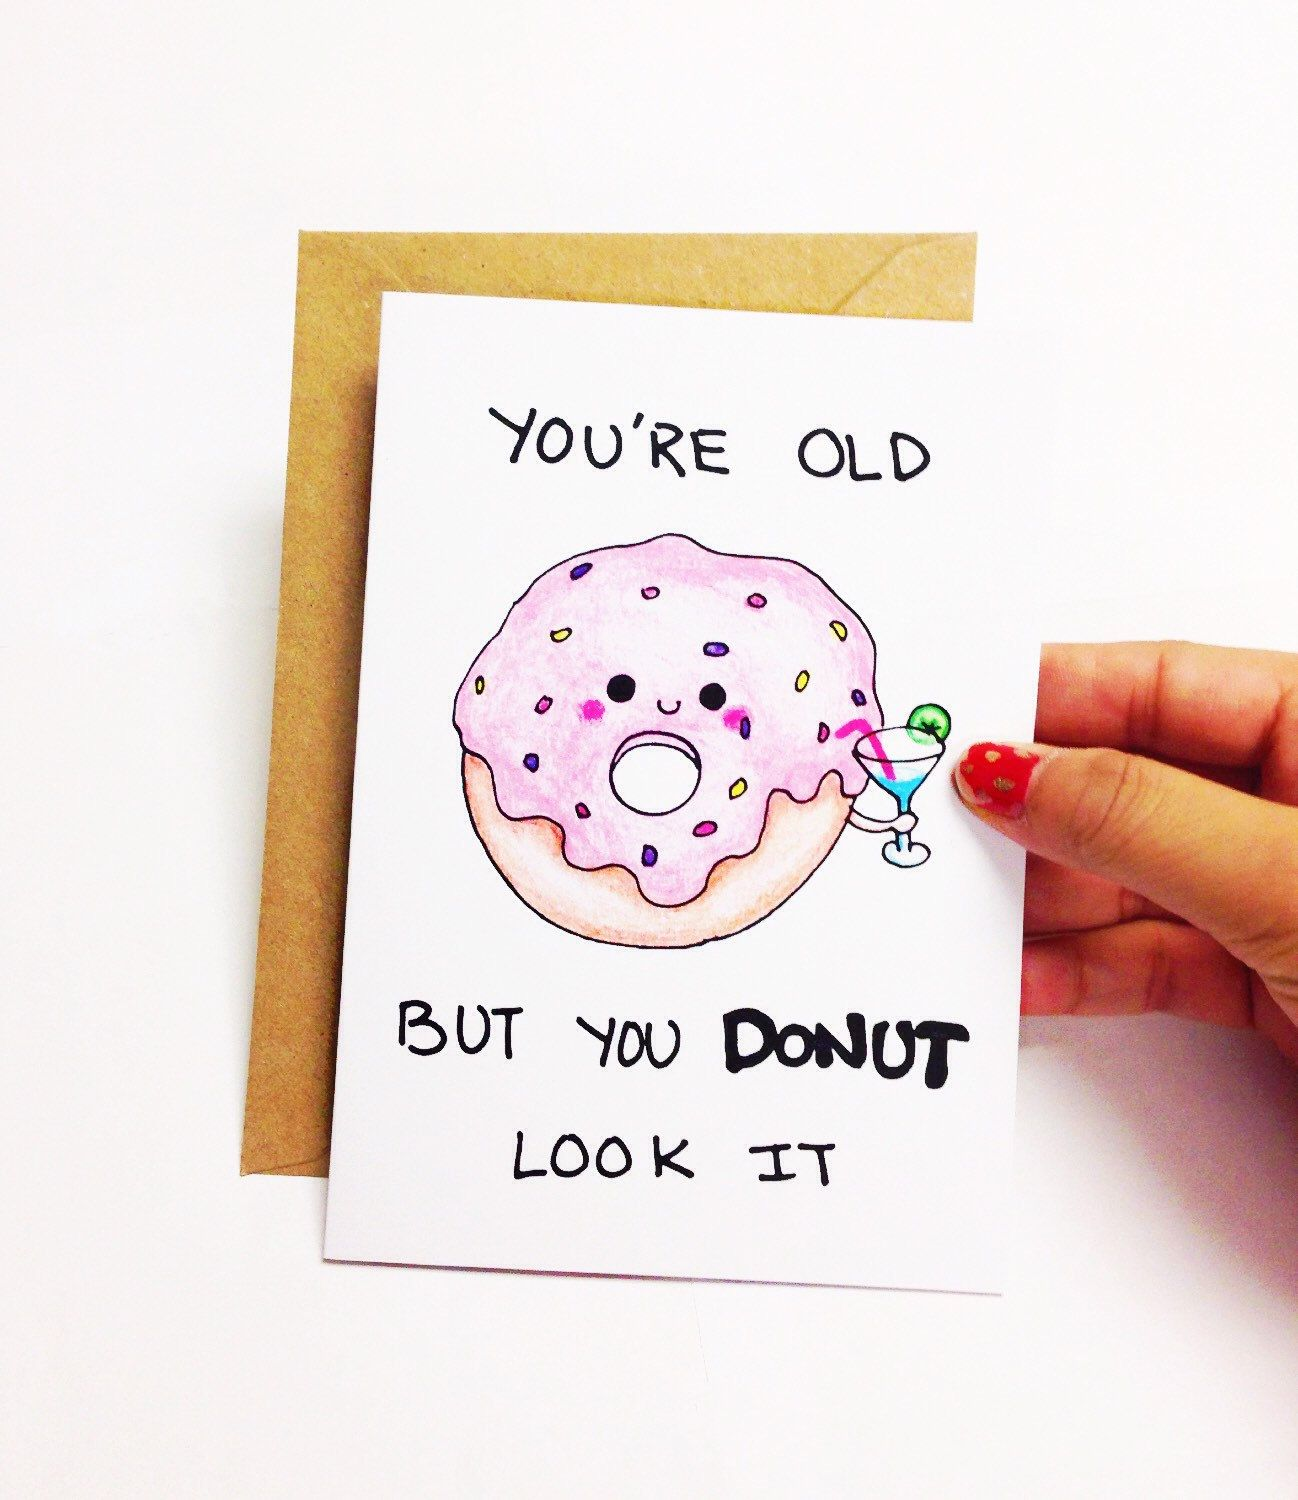 25 Fun Gifts For Best Friends For Any Occasion: You're Old But You Donut Look Like It Card